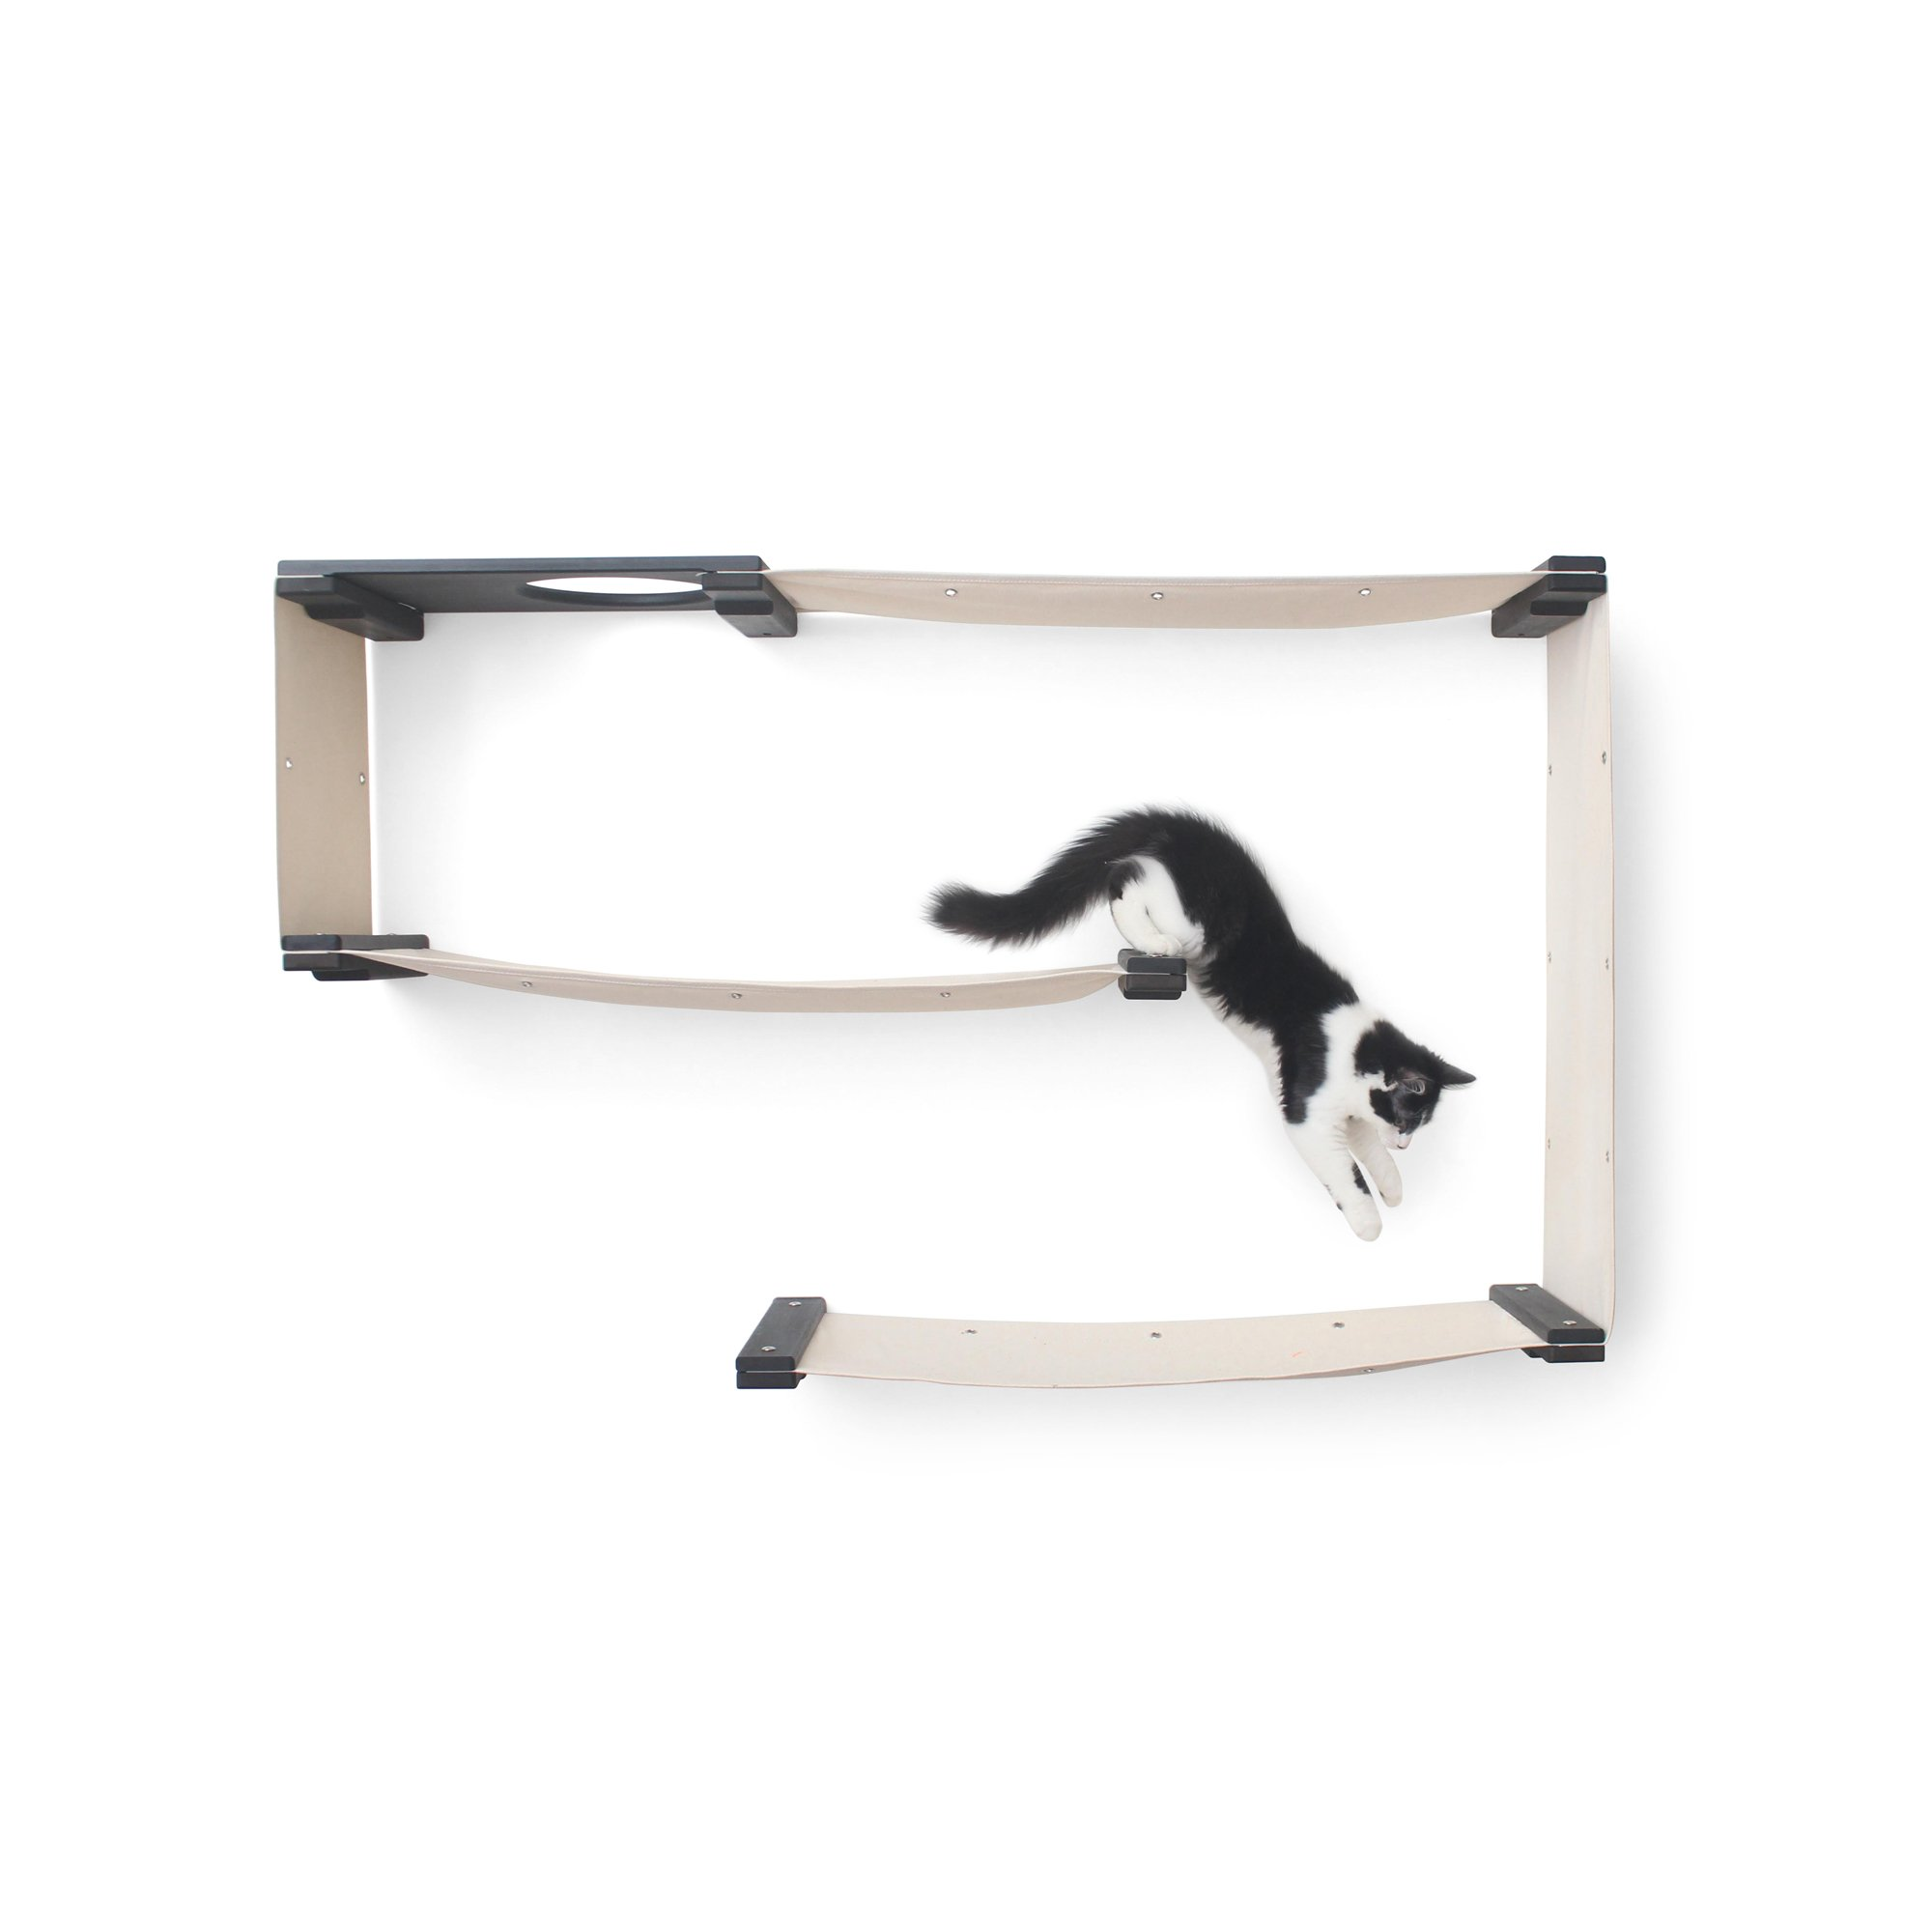 Catastrophicreations The Cat Mod Maze Lounging Hammocks For Cats In Onyx, 52 In W X 31 In H, 16 Lb